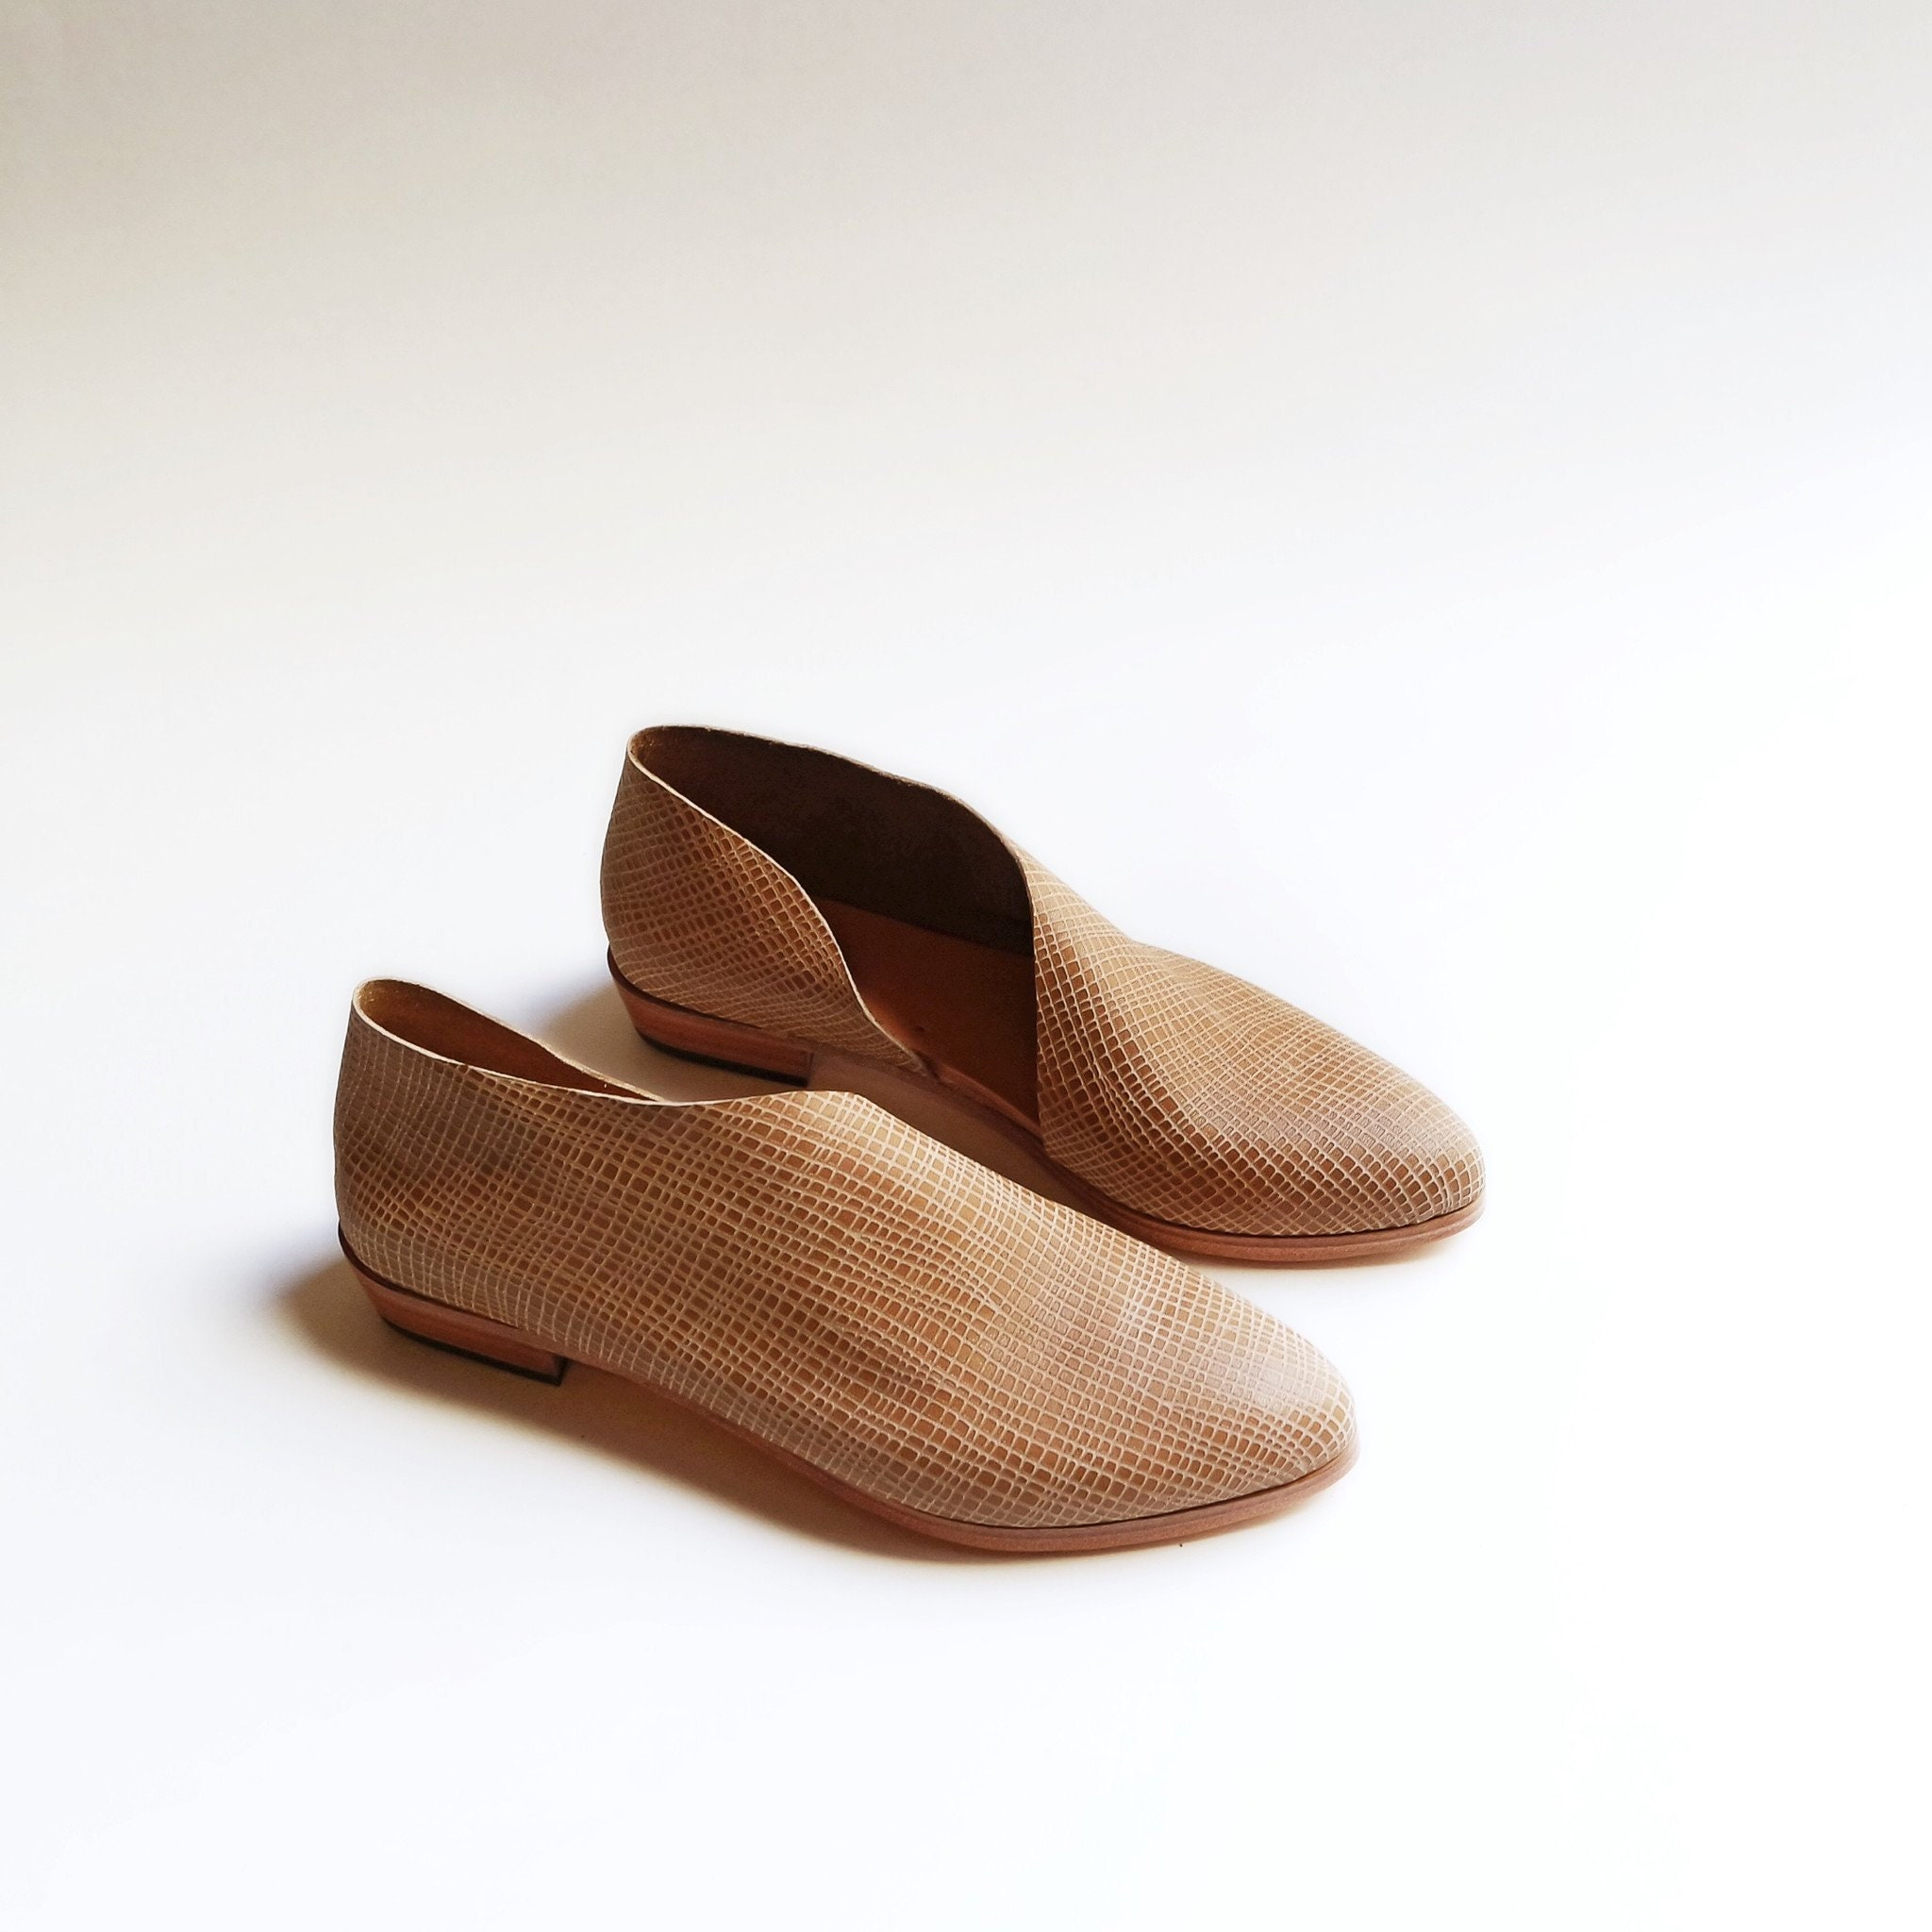 The Sandy Linen Handmade Chaussure S Minimal And Order Soft